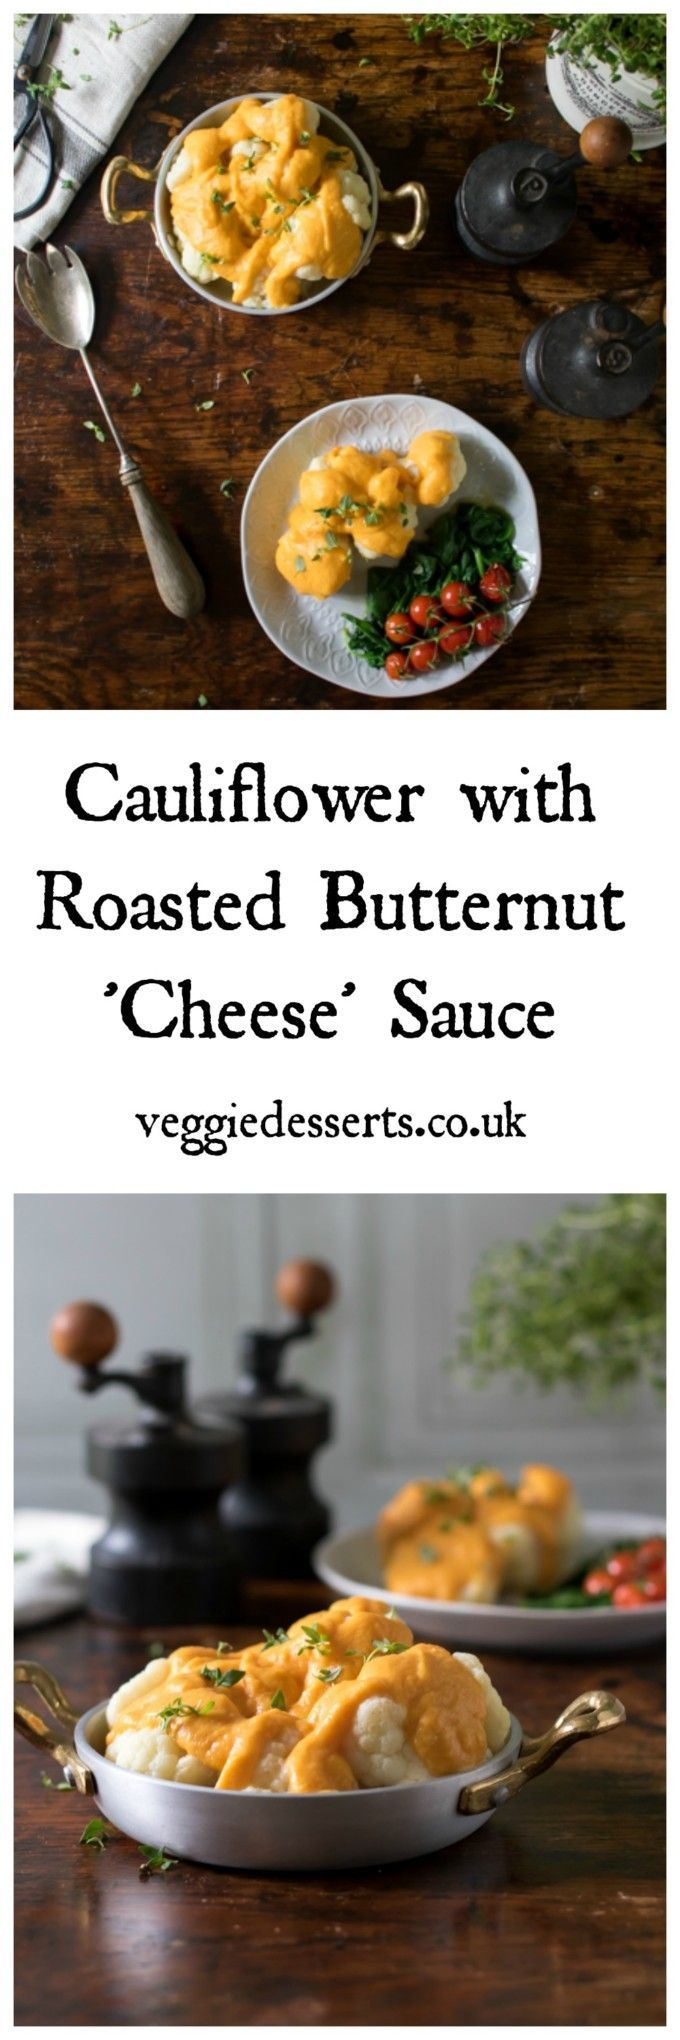 Cauliflower with a roasted butternut squash cheeseless sauce. Creamy and tasty. A great side dish and ready in 30 minutes. #butternut #cauliflower #sidedish #cauliflowercheese